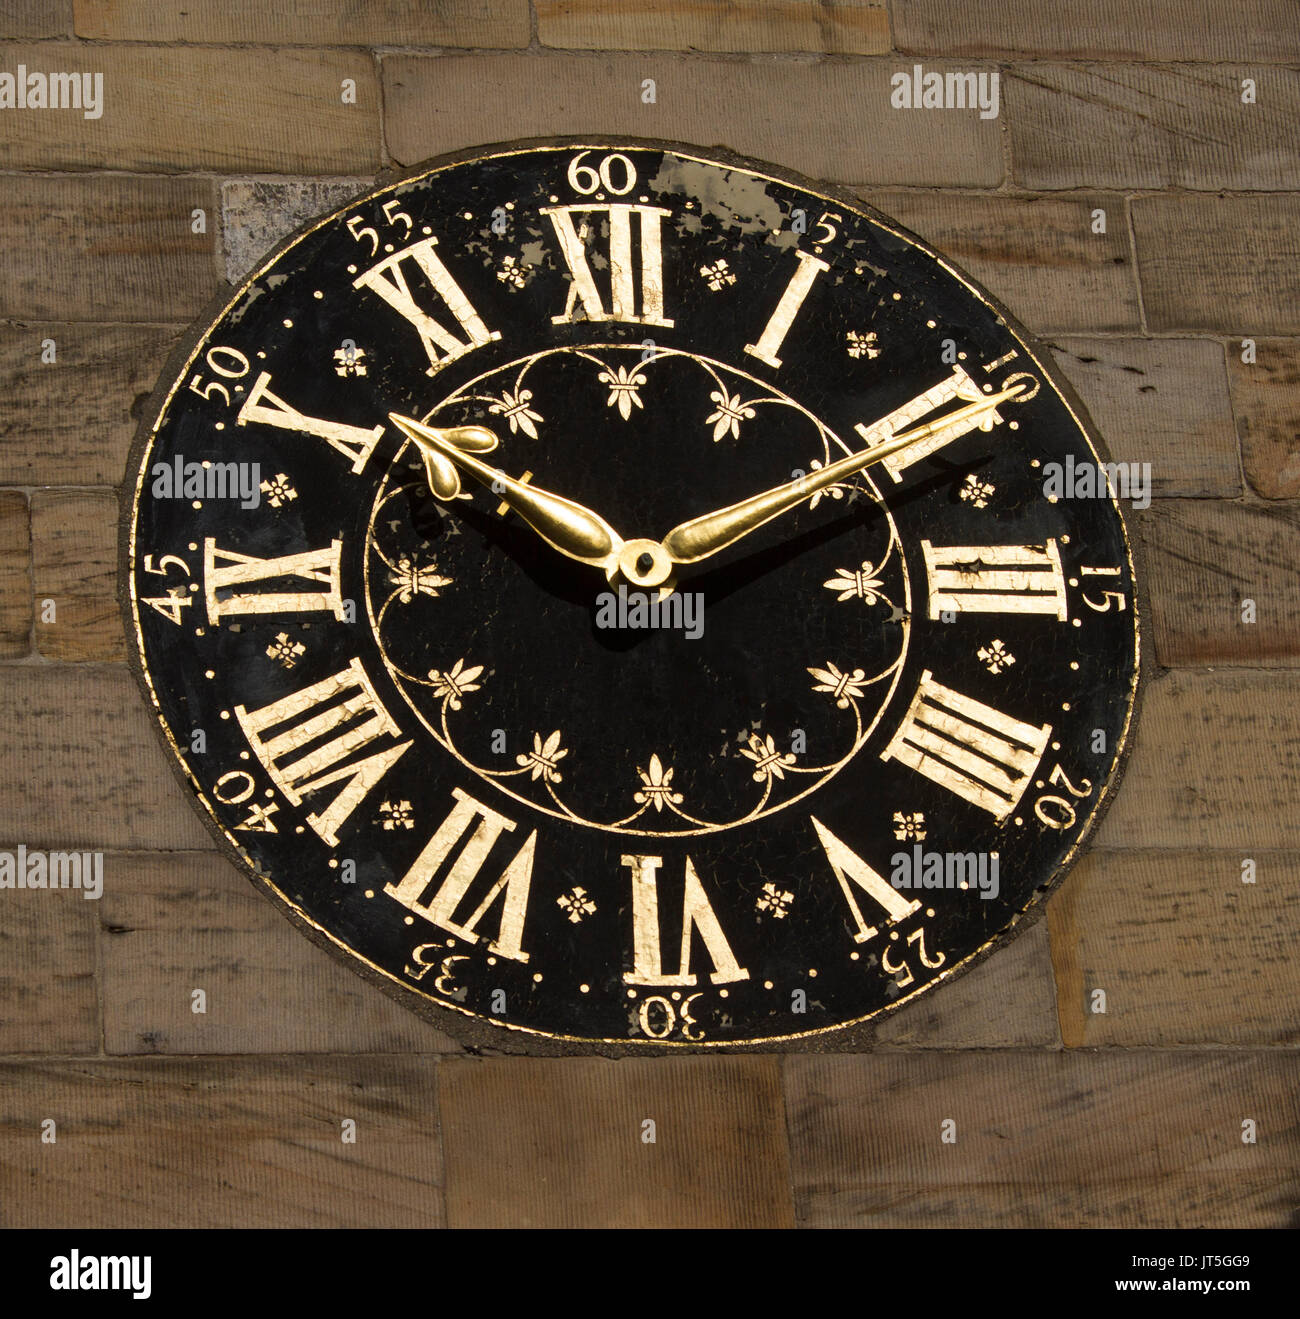 Large clock with black face and gold Roman numerals on brick wall of city building in York, England - Stock Image